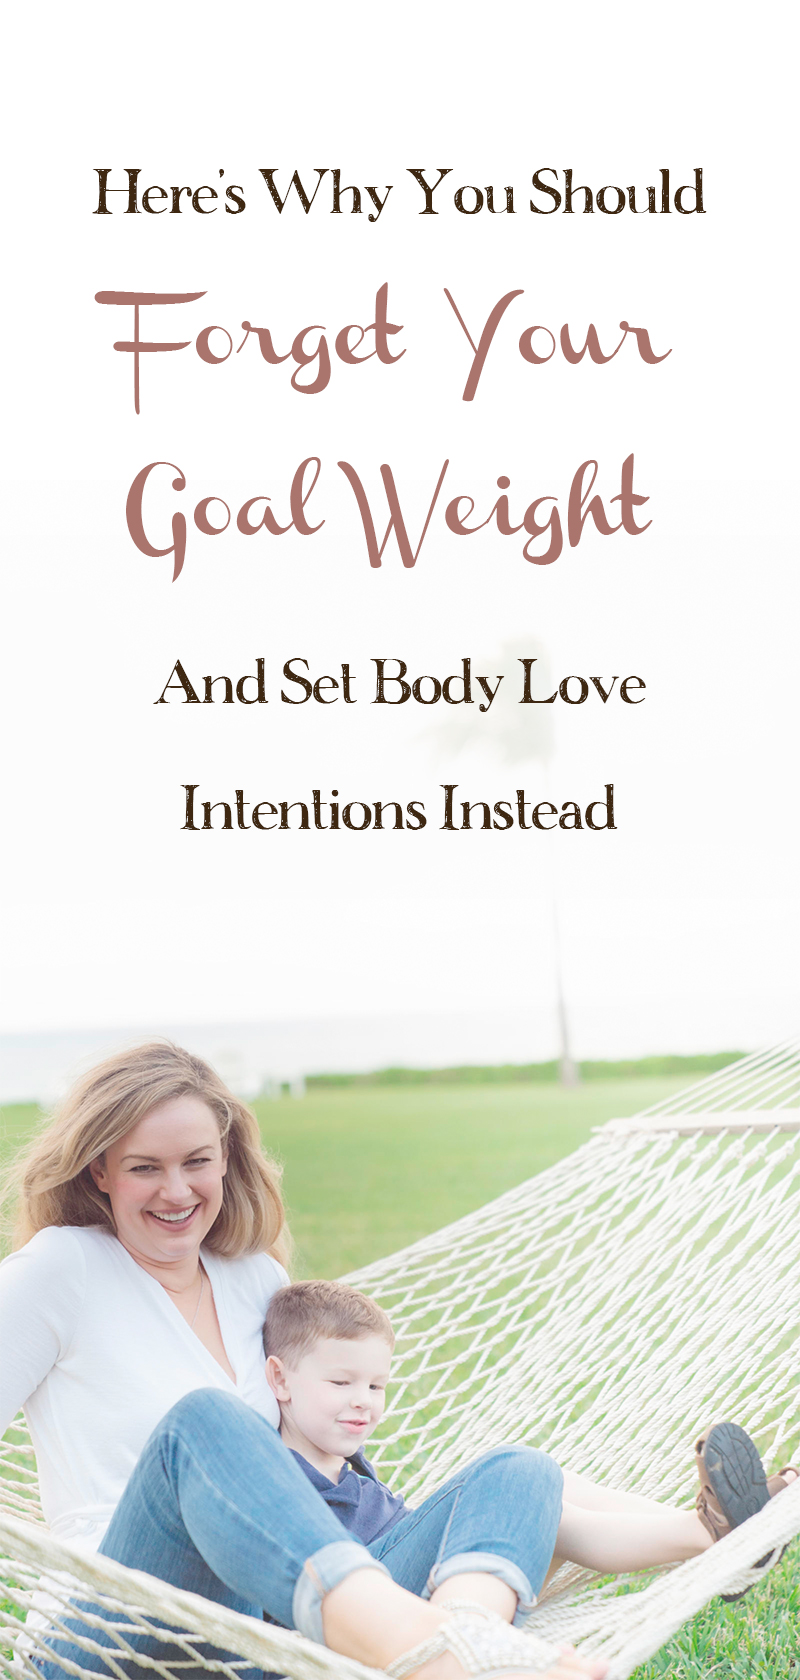 Heres-Why-You-Should-Forget-Your-Goal-Weight